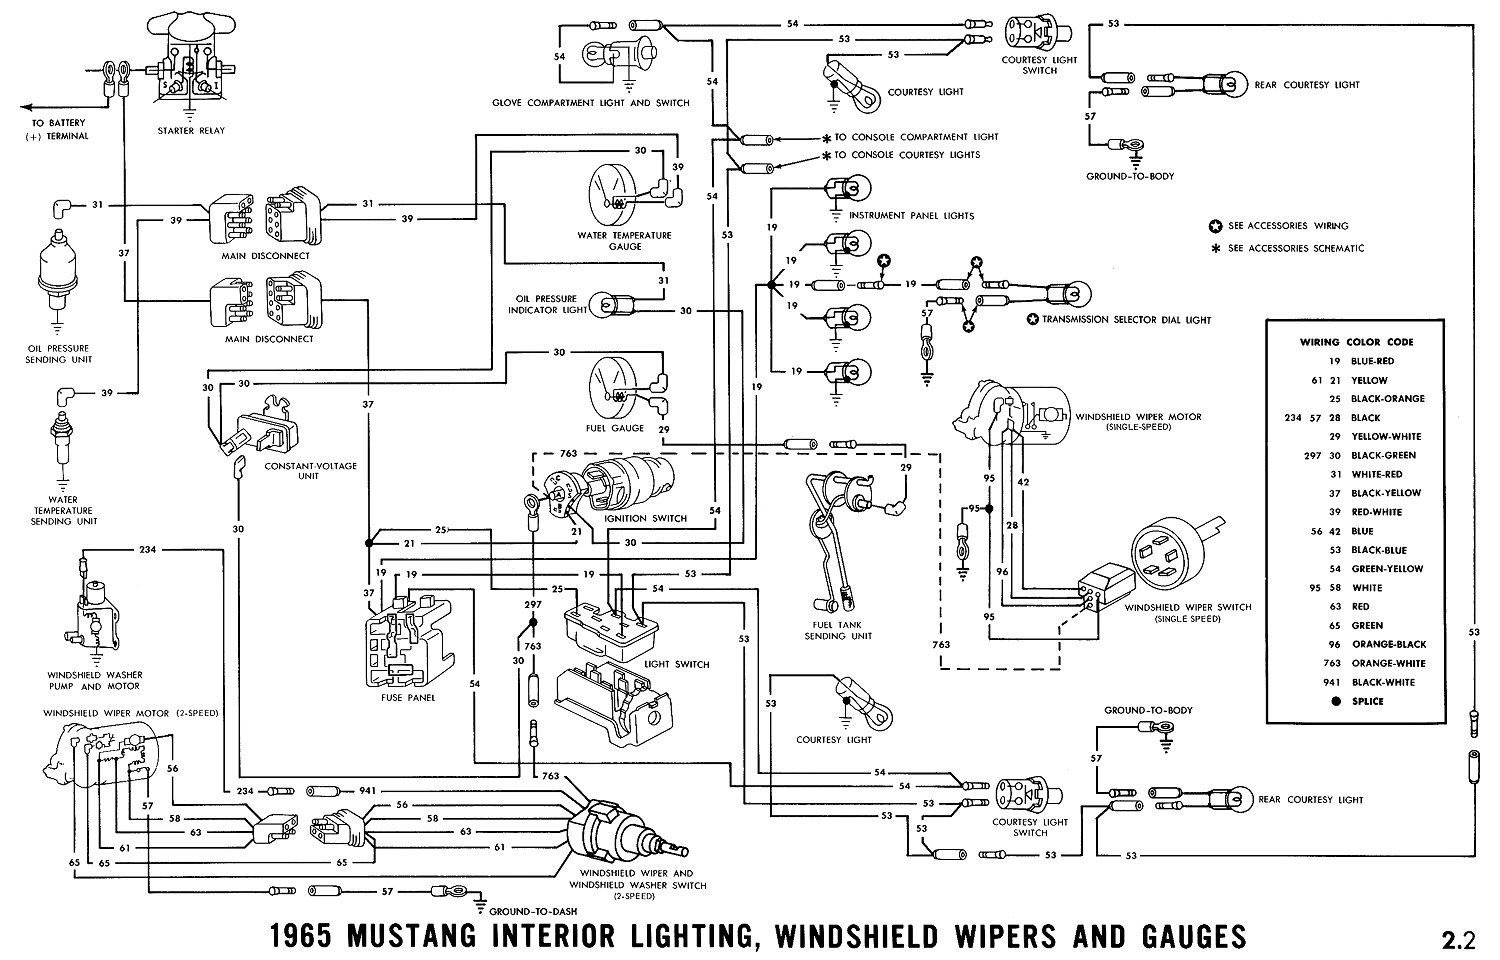 1965g 1965 mustang wiring diagrams average joe restoration 65 mustang tail light wiring diagram at n-0.co